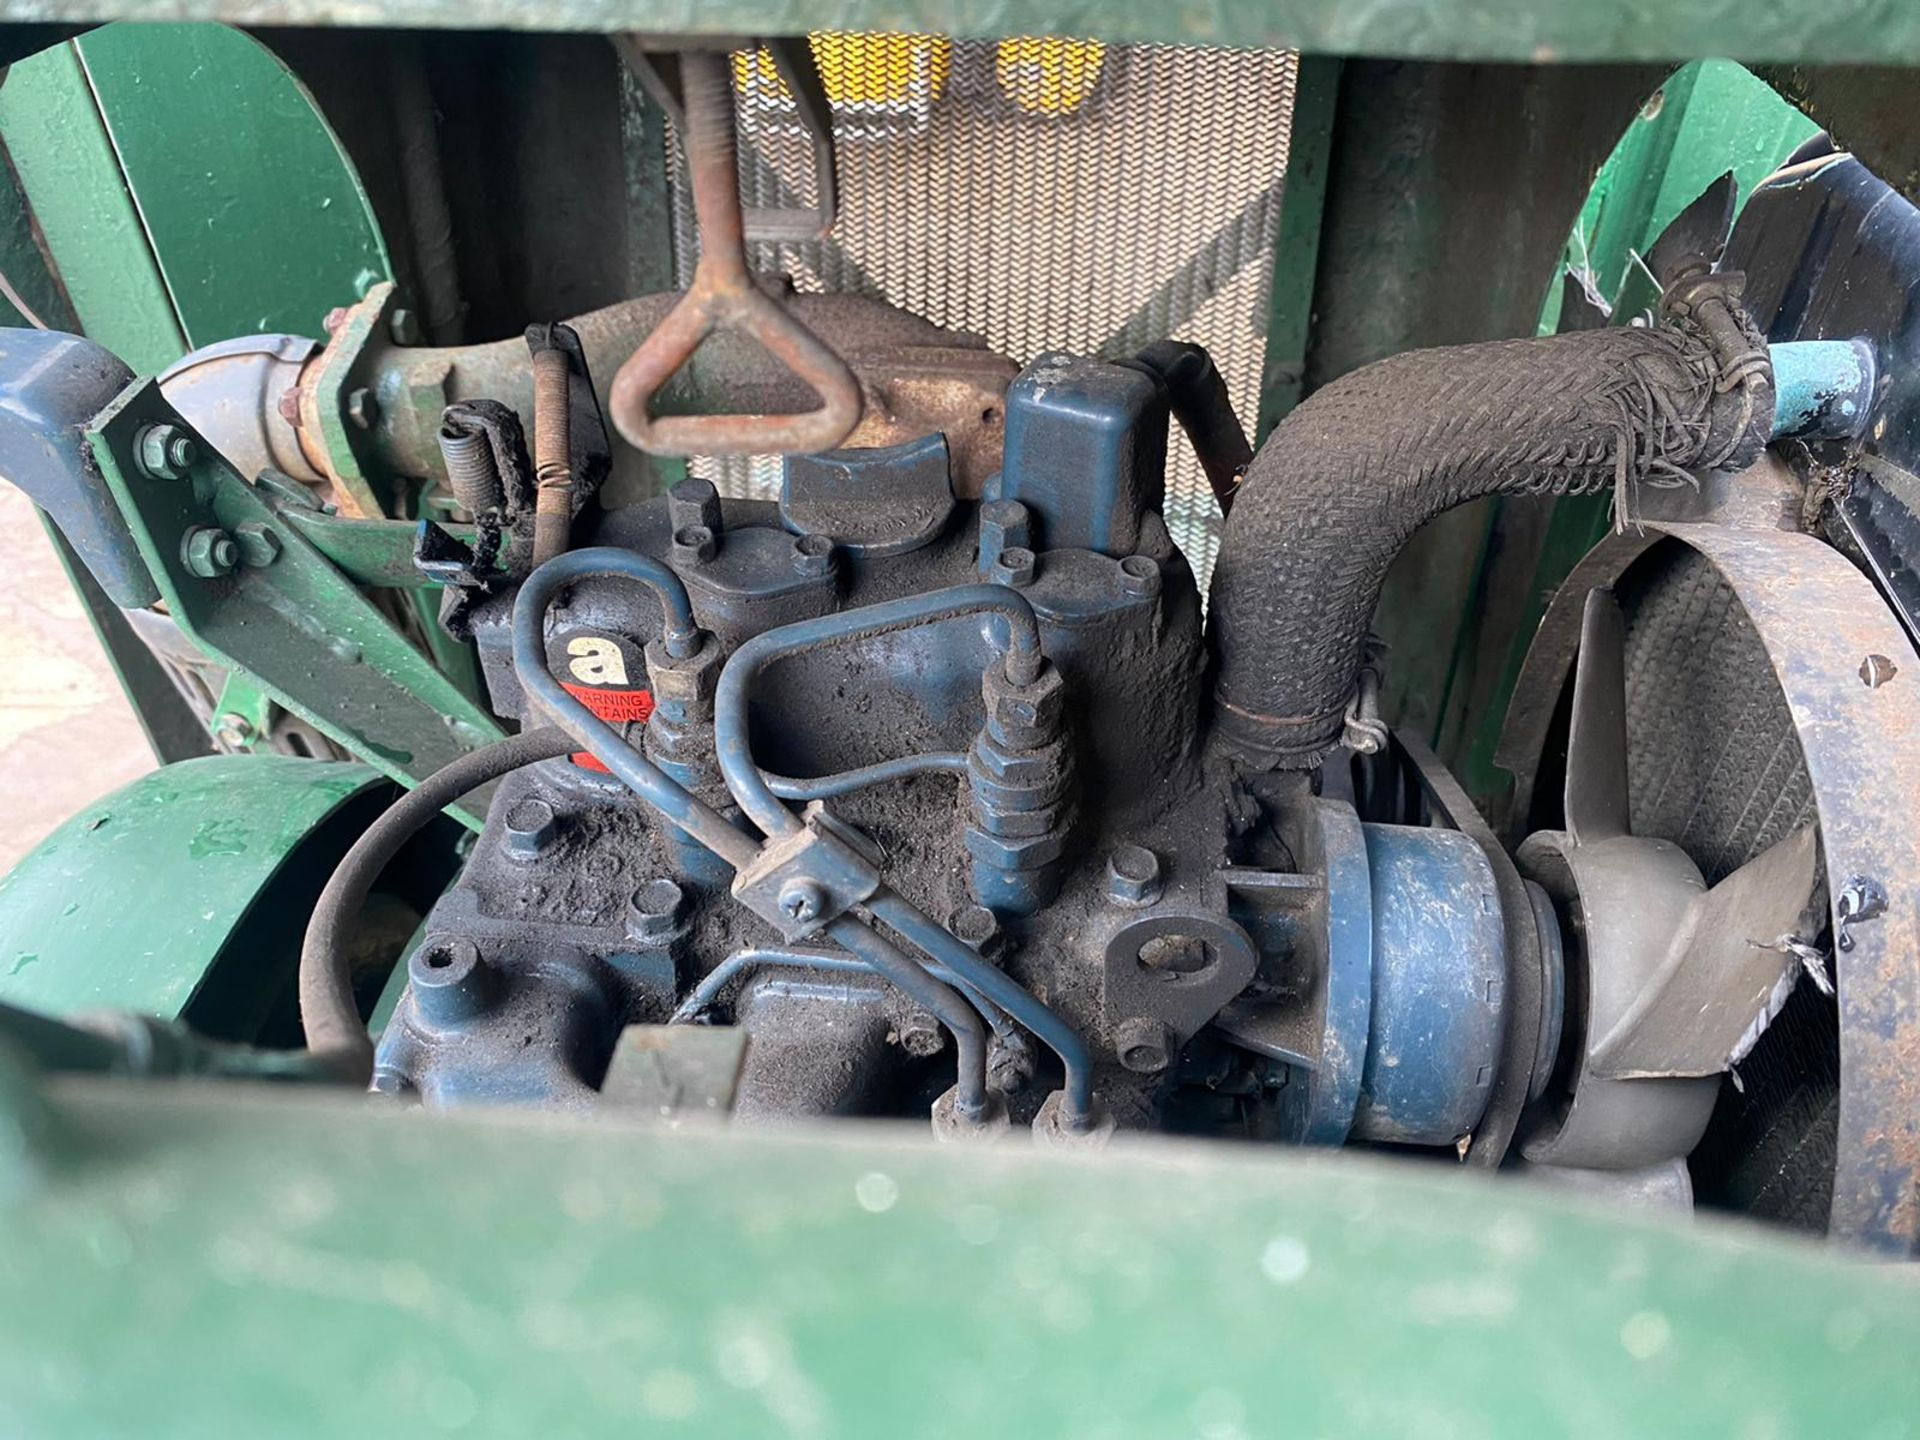 RANSOMES MOTOR TRIPLE DIESEL MOWER, KUBOTA DIESEL ENGINE, STARTS, FIRST TIME, RUNS, DRIVES, CUTS - Image 3 of 5